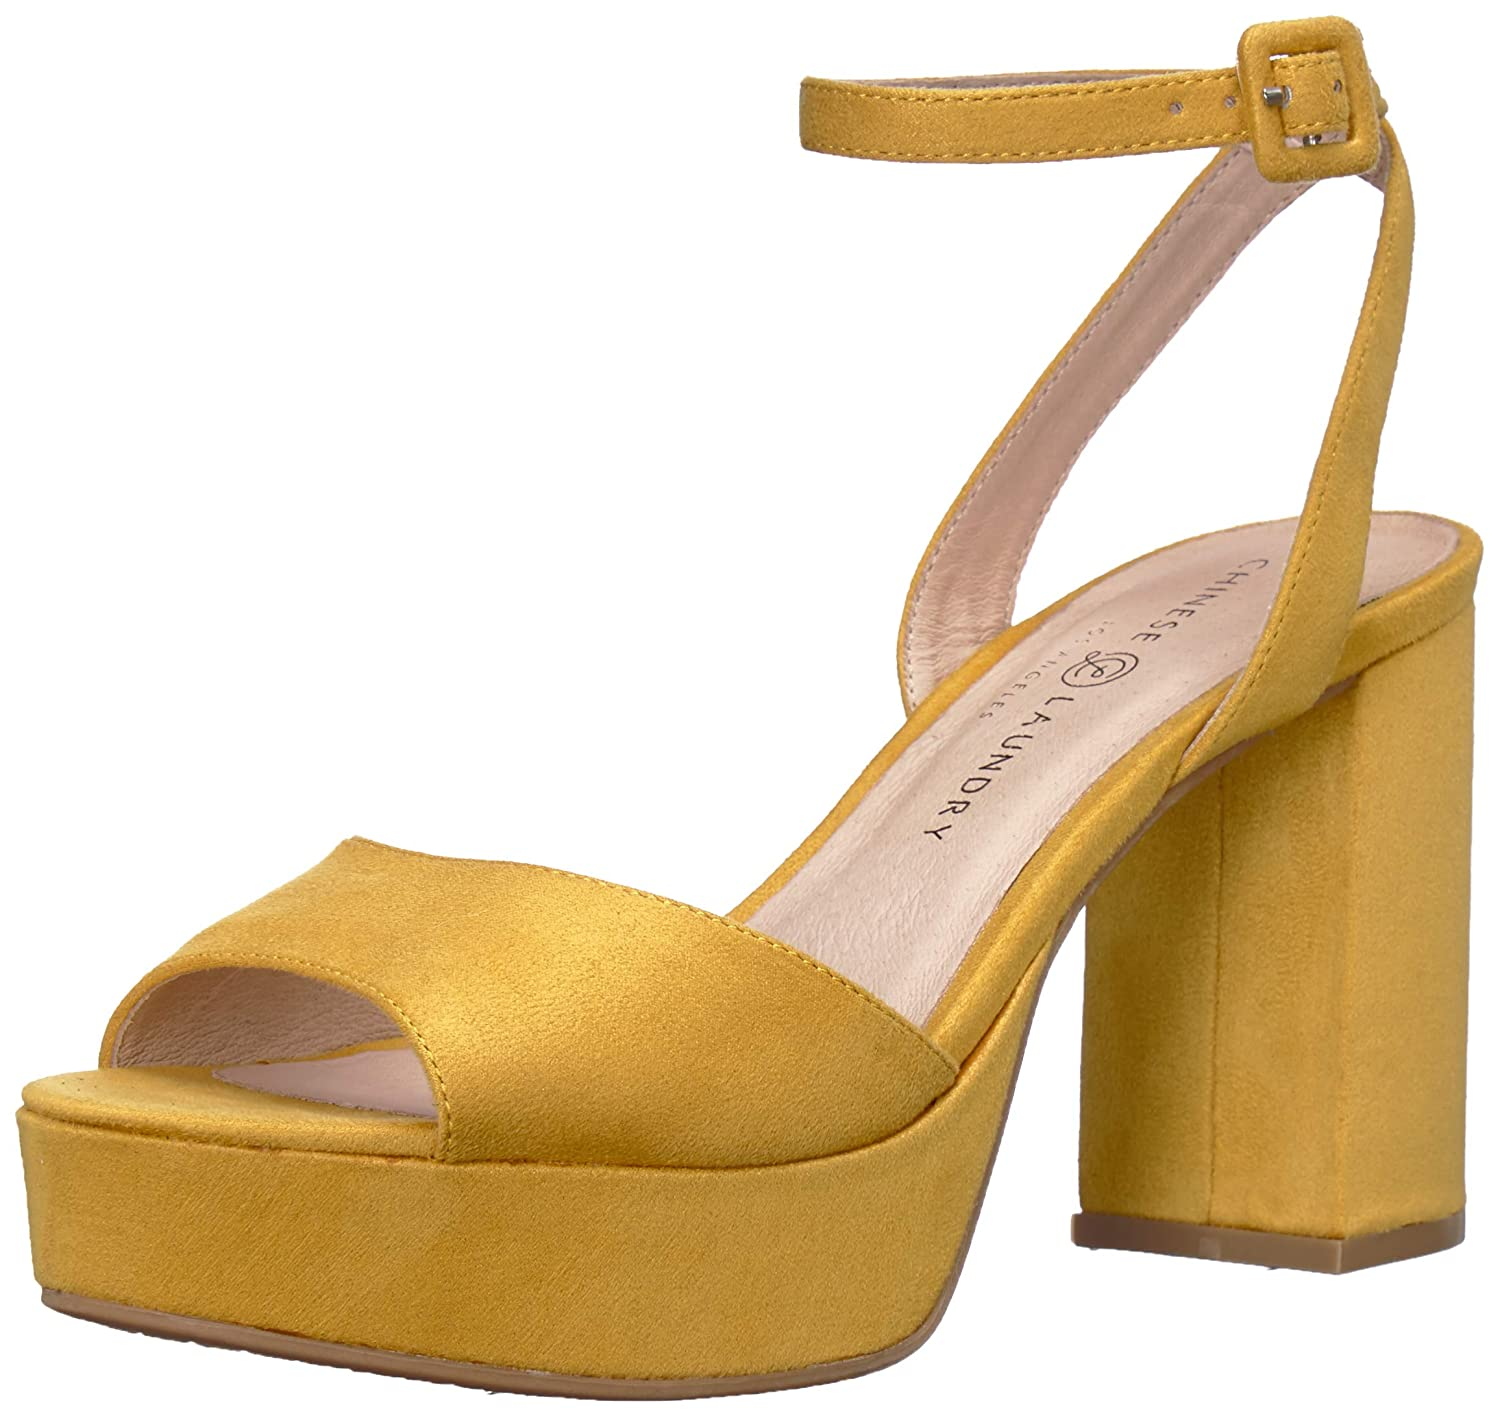 70s Shoes, Platforms, Boots, Heels Chinese Laundry Womens Theresa Heeled Sandal $79.95 AT vintagedancer.com